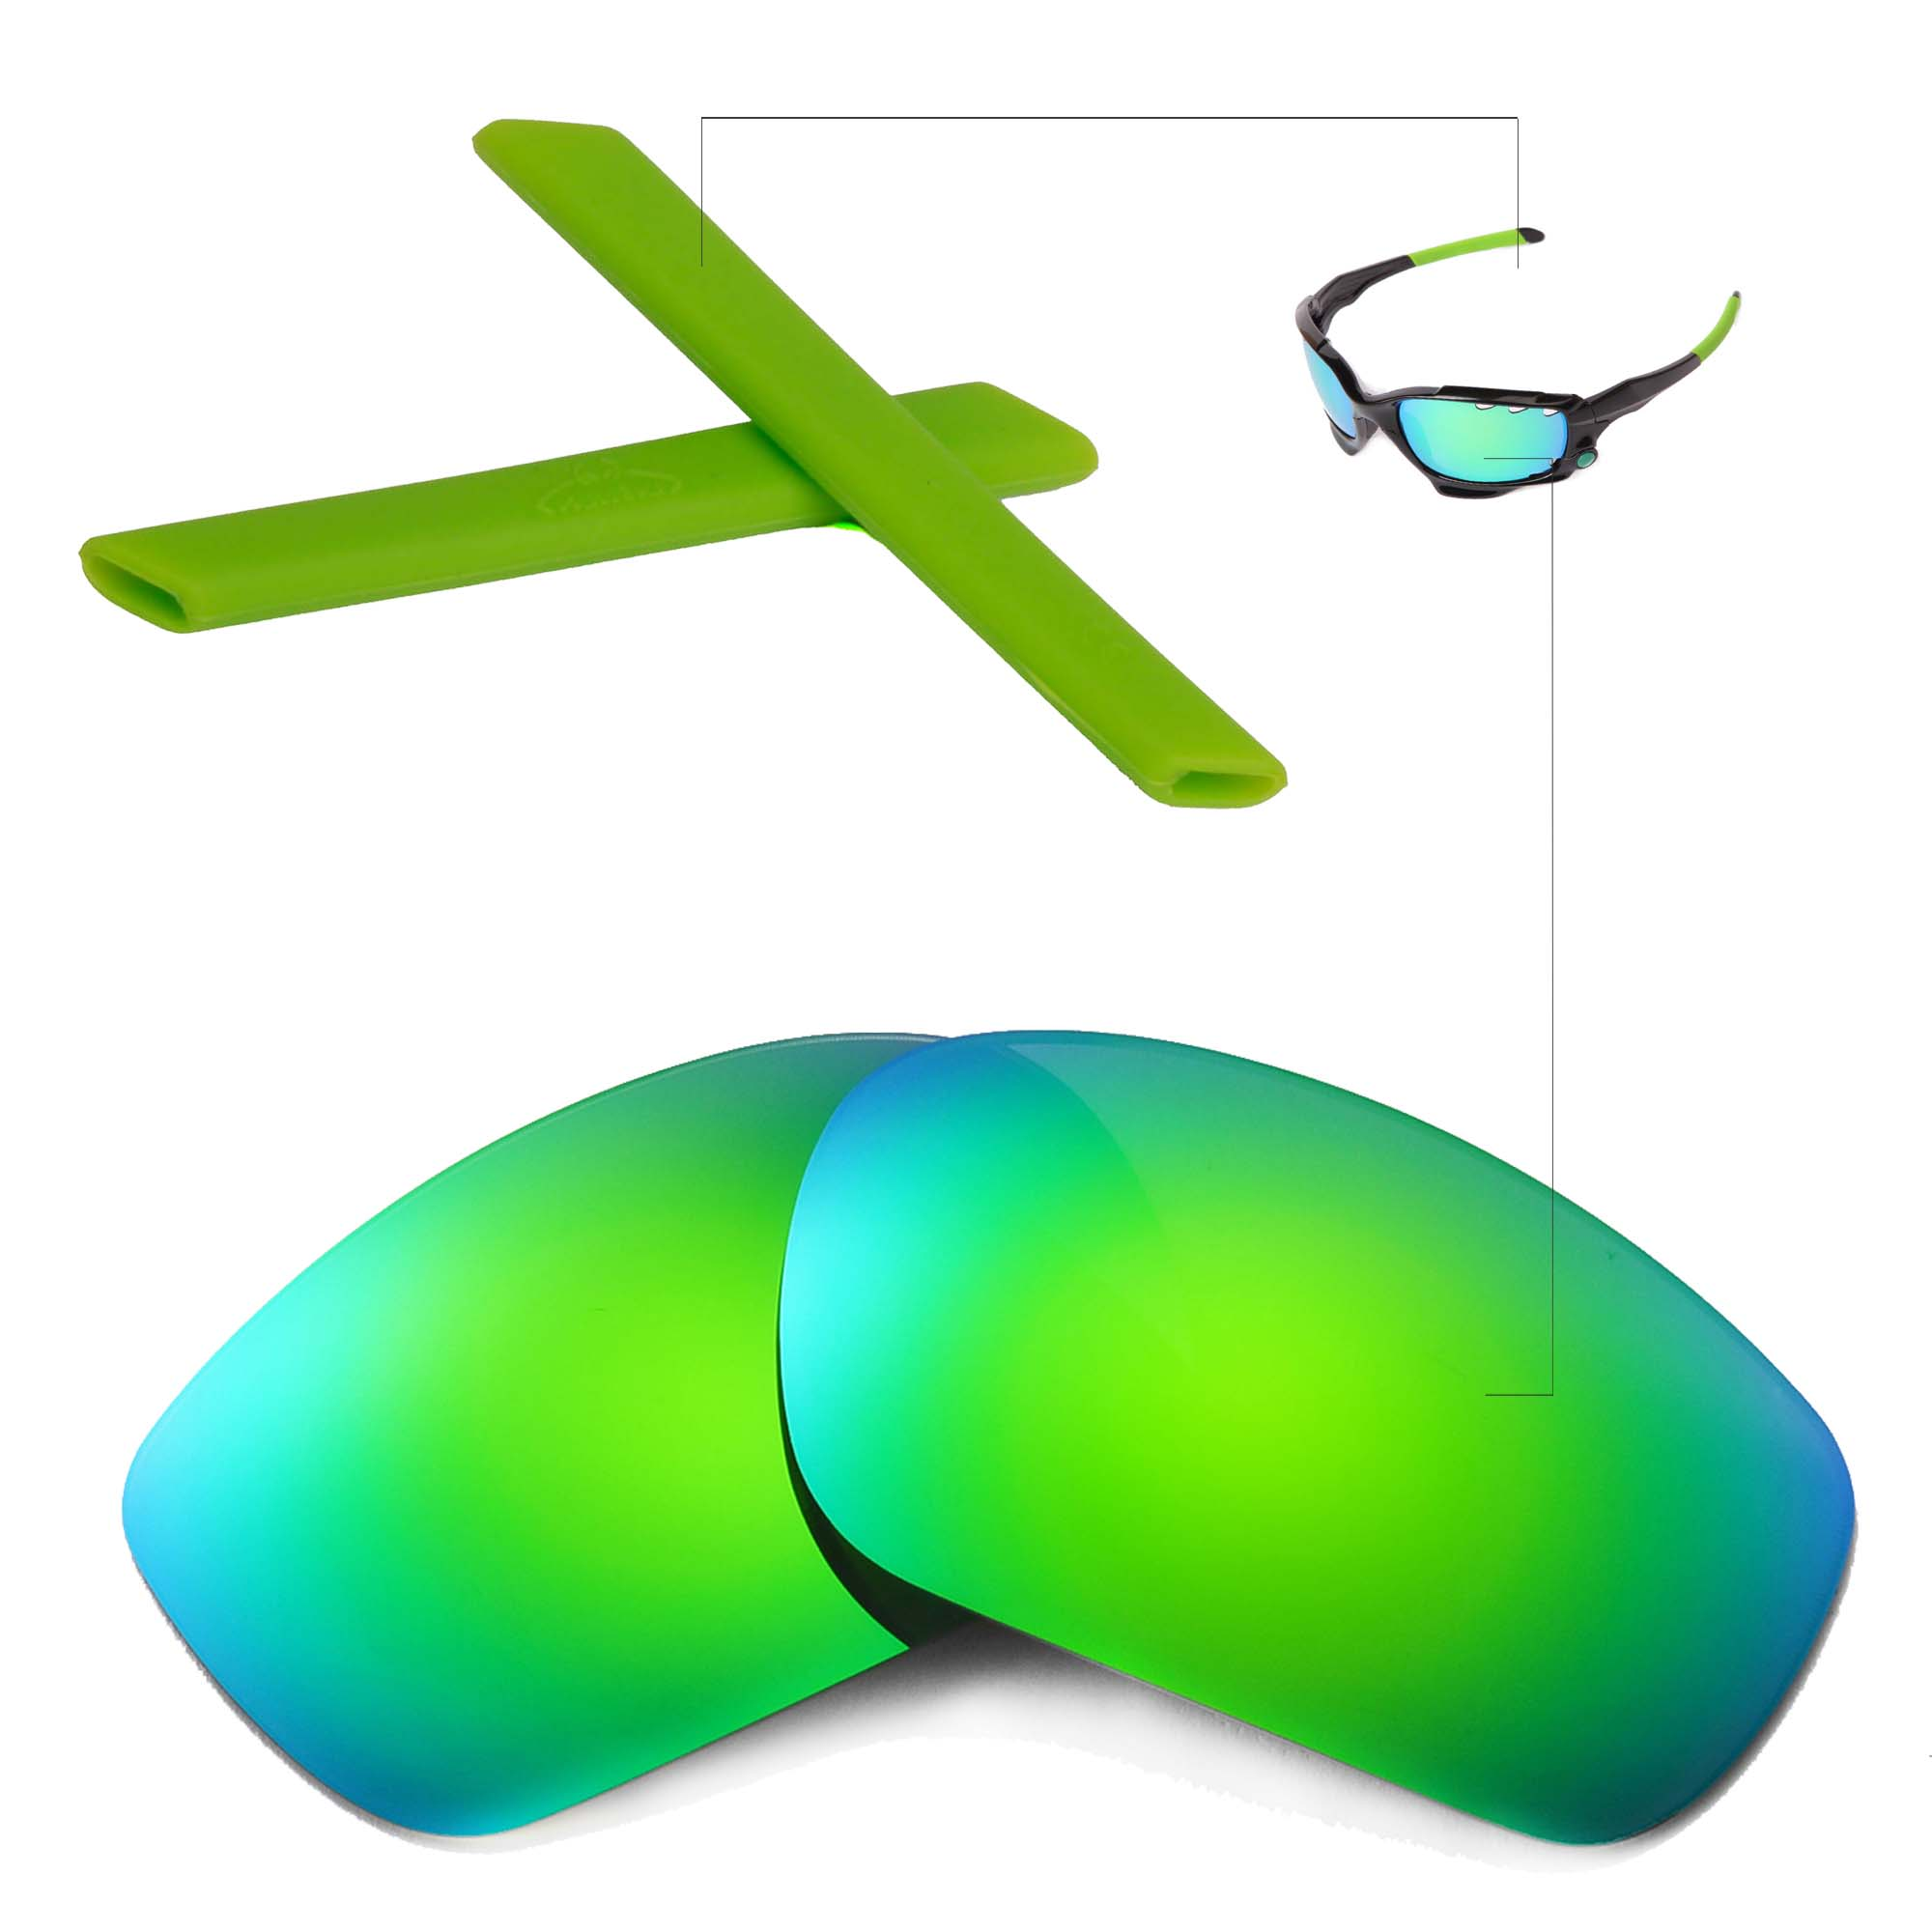 New walleva polarized emerald lenses and green earsocks for oakley main image biocorpaavc Image collections